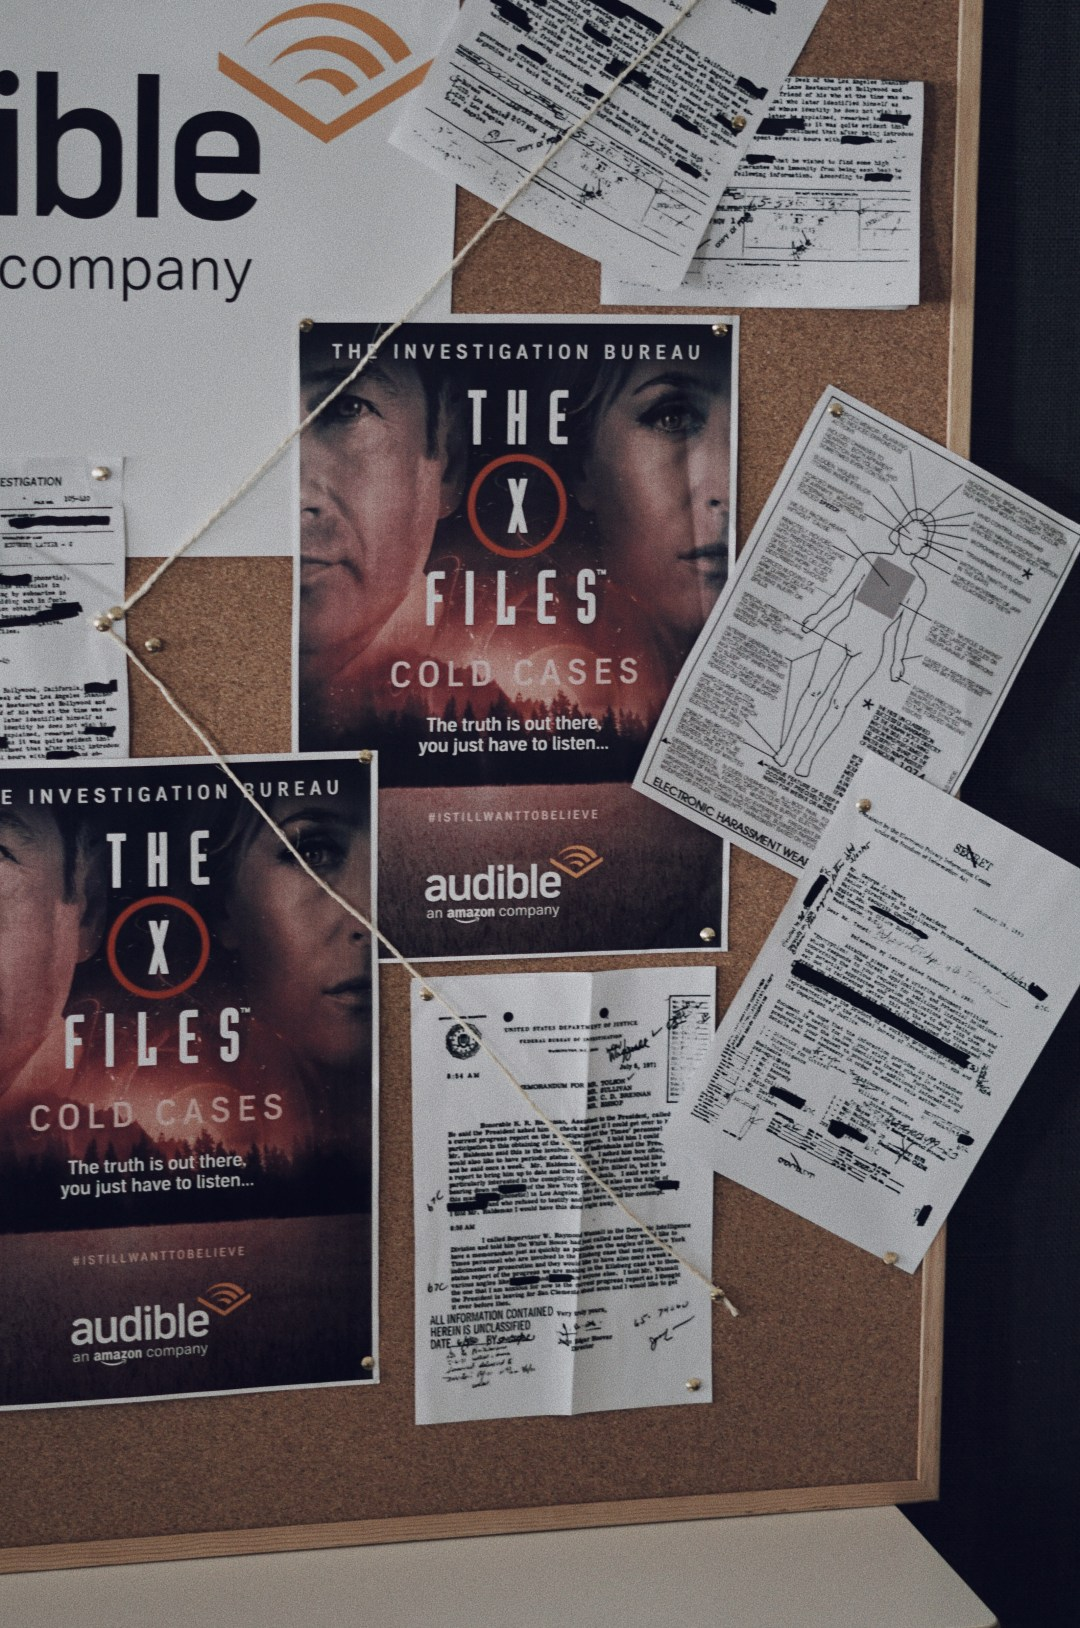 The X-Files: Cold Cases audiobook is now available on Audible. Blog by Skirmantas Petraitis.